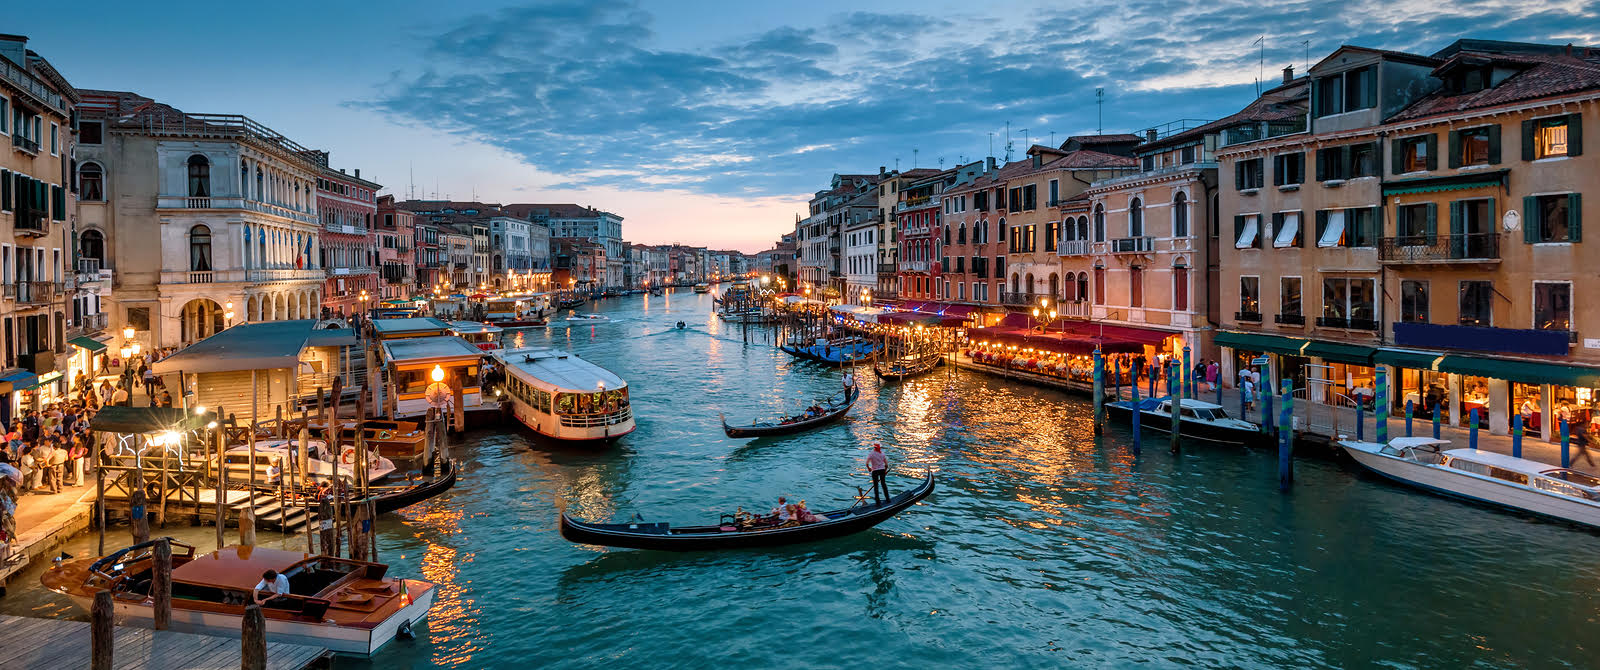 How to Take Landscape Photos concept - Venice sunset